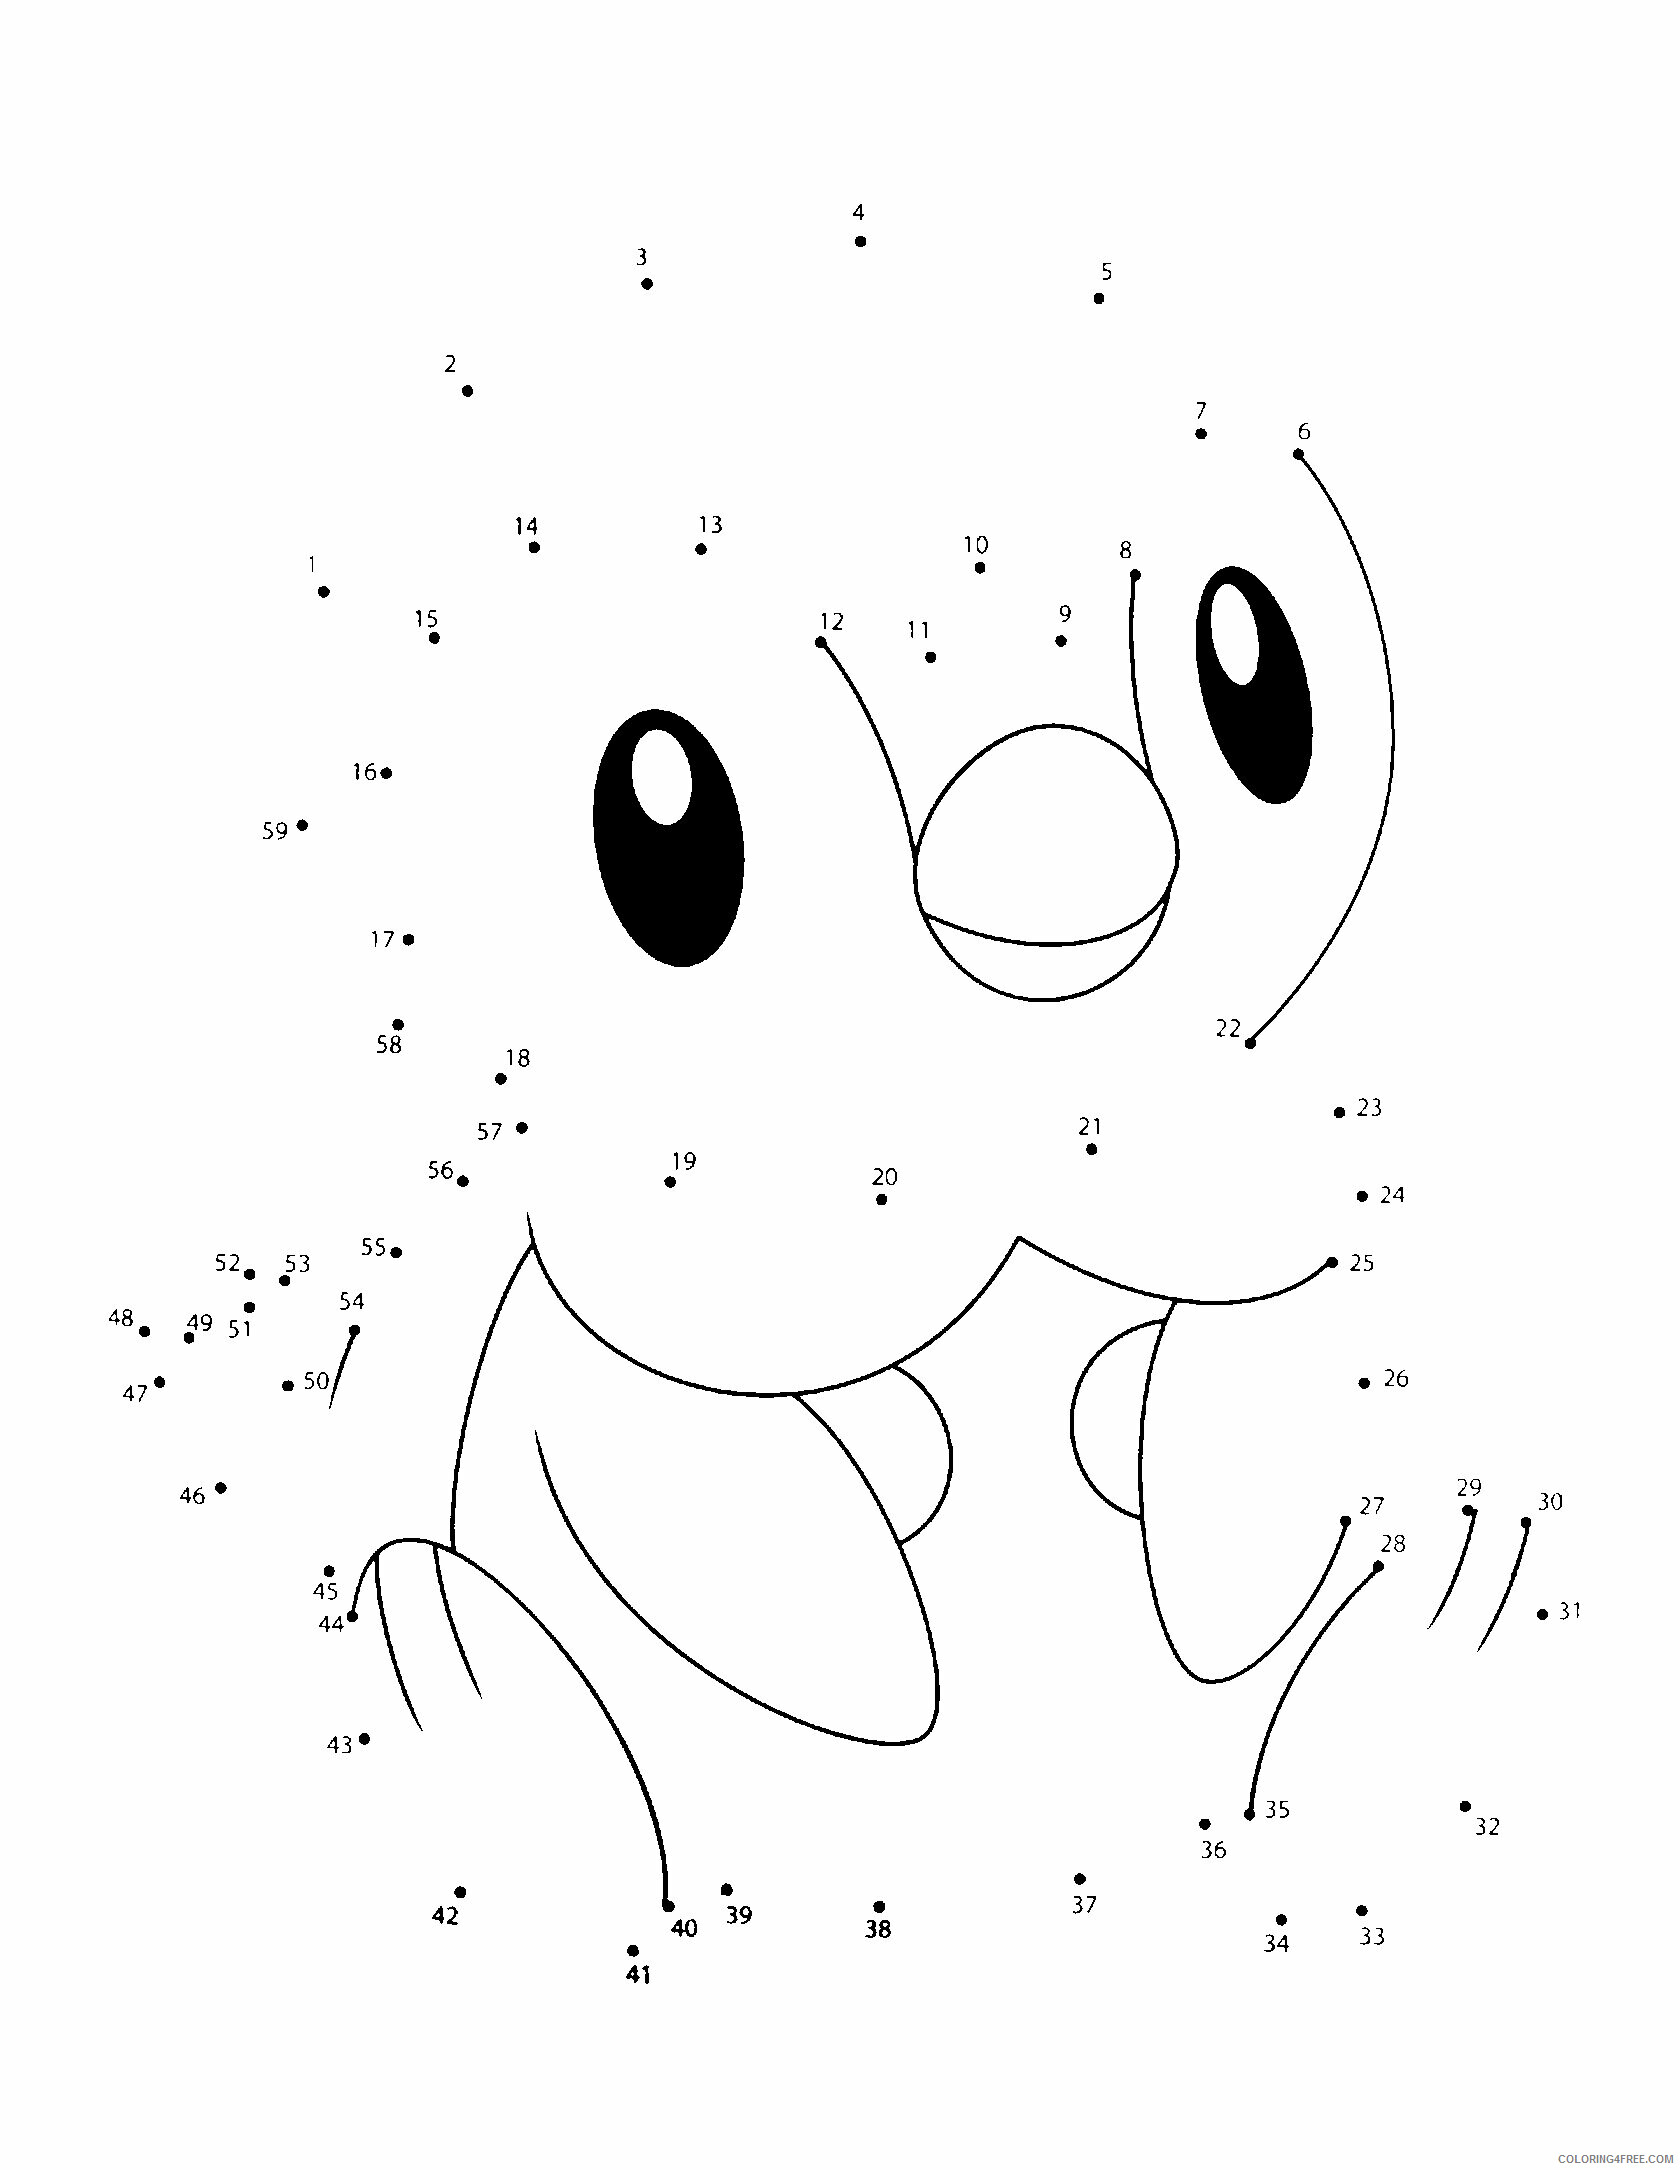 Connect the Dots Pokemon Characters Printable Coloring Pages pokemon 229 2021 022 Coloring4free